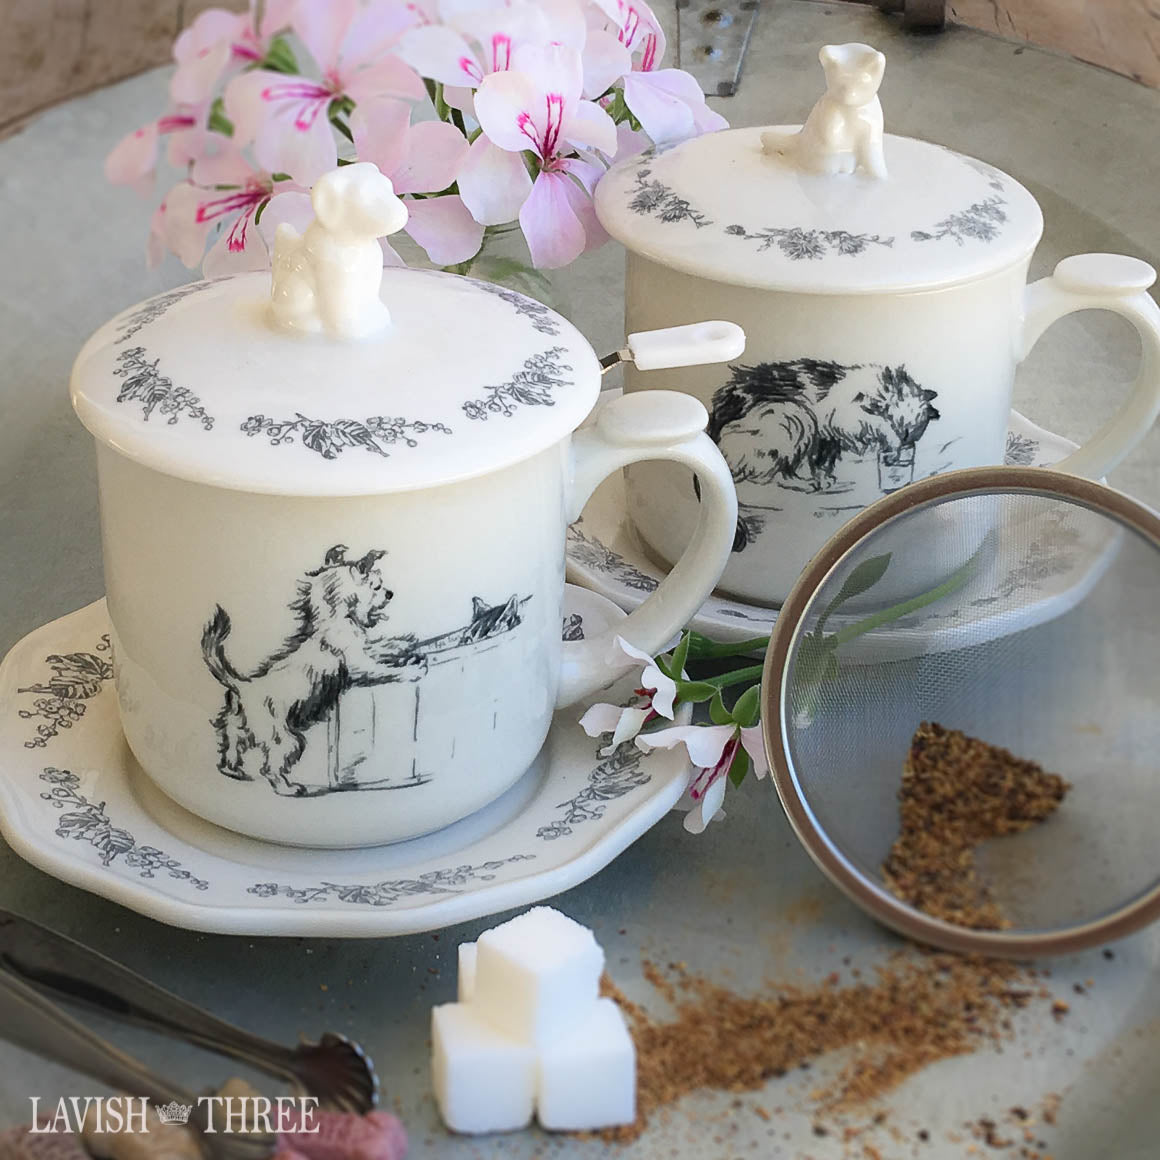 Cat kitten lover tea set with cup saucer and strainer Lavish Three 3